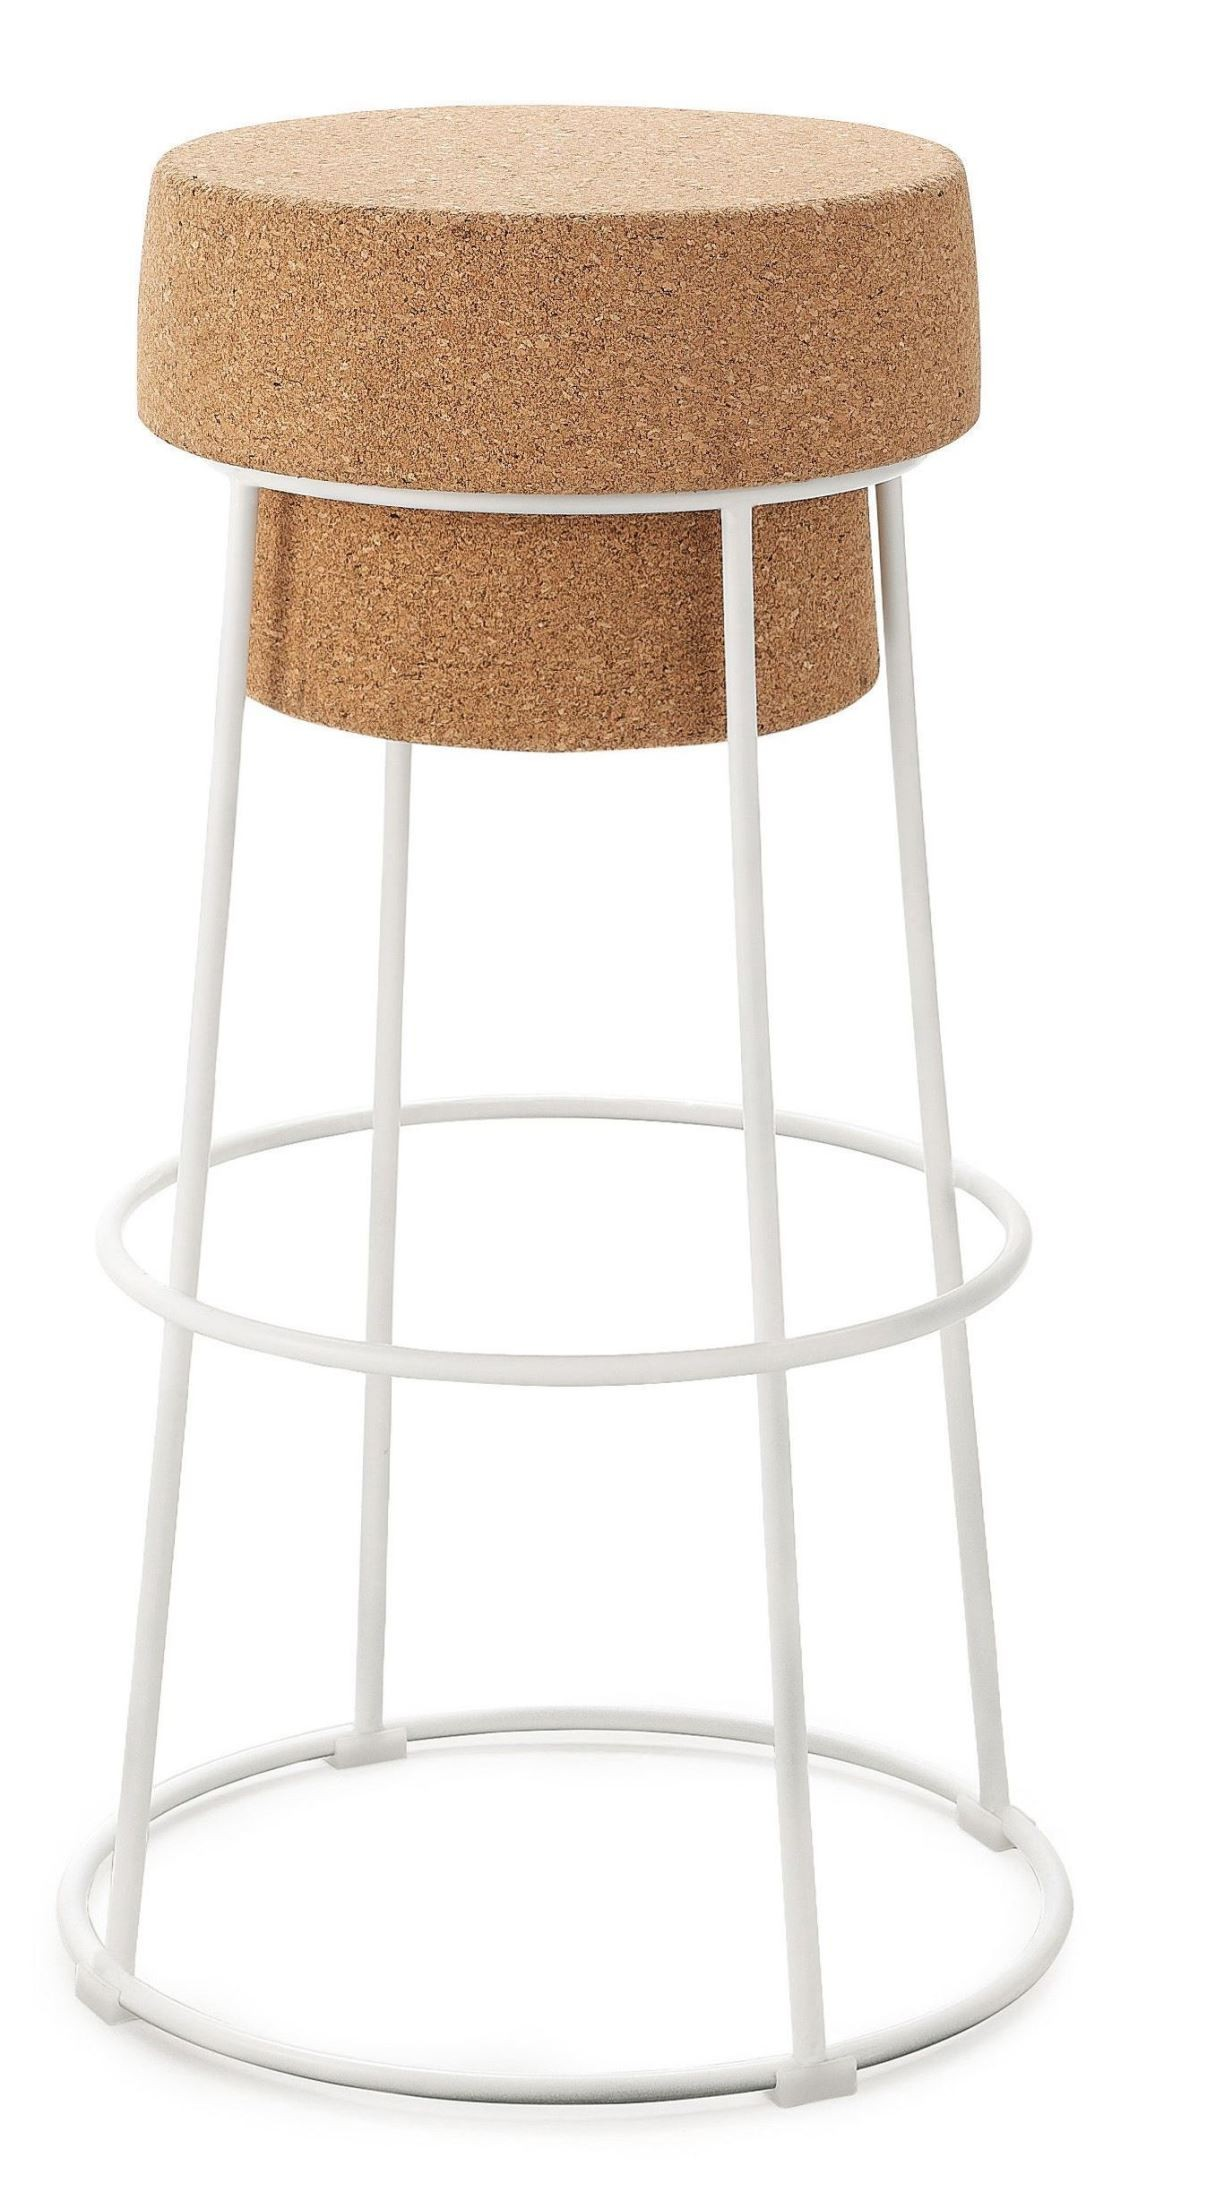 Bouchon Counter Stool Bouchon Cork Lacquered Steel Counter Stool From Domitalia